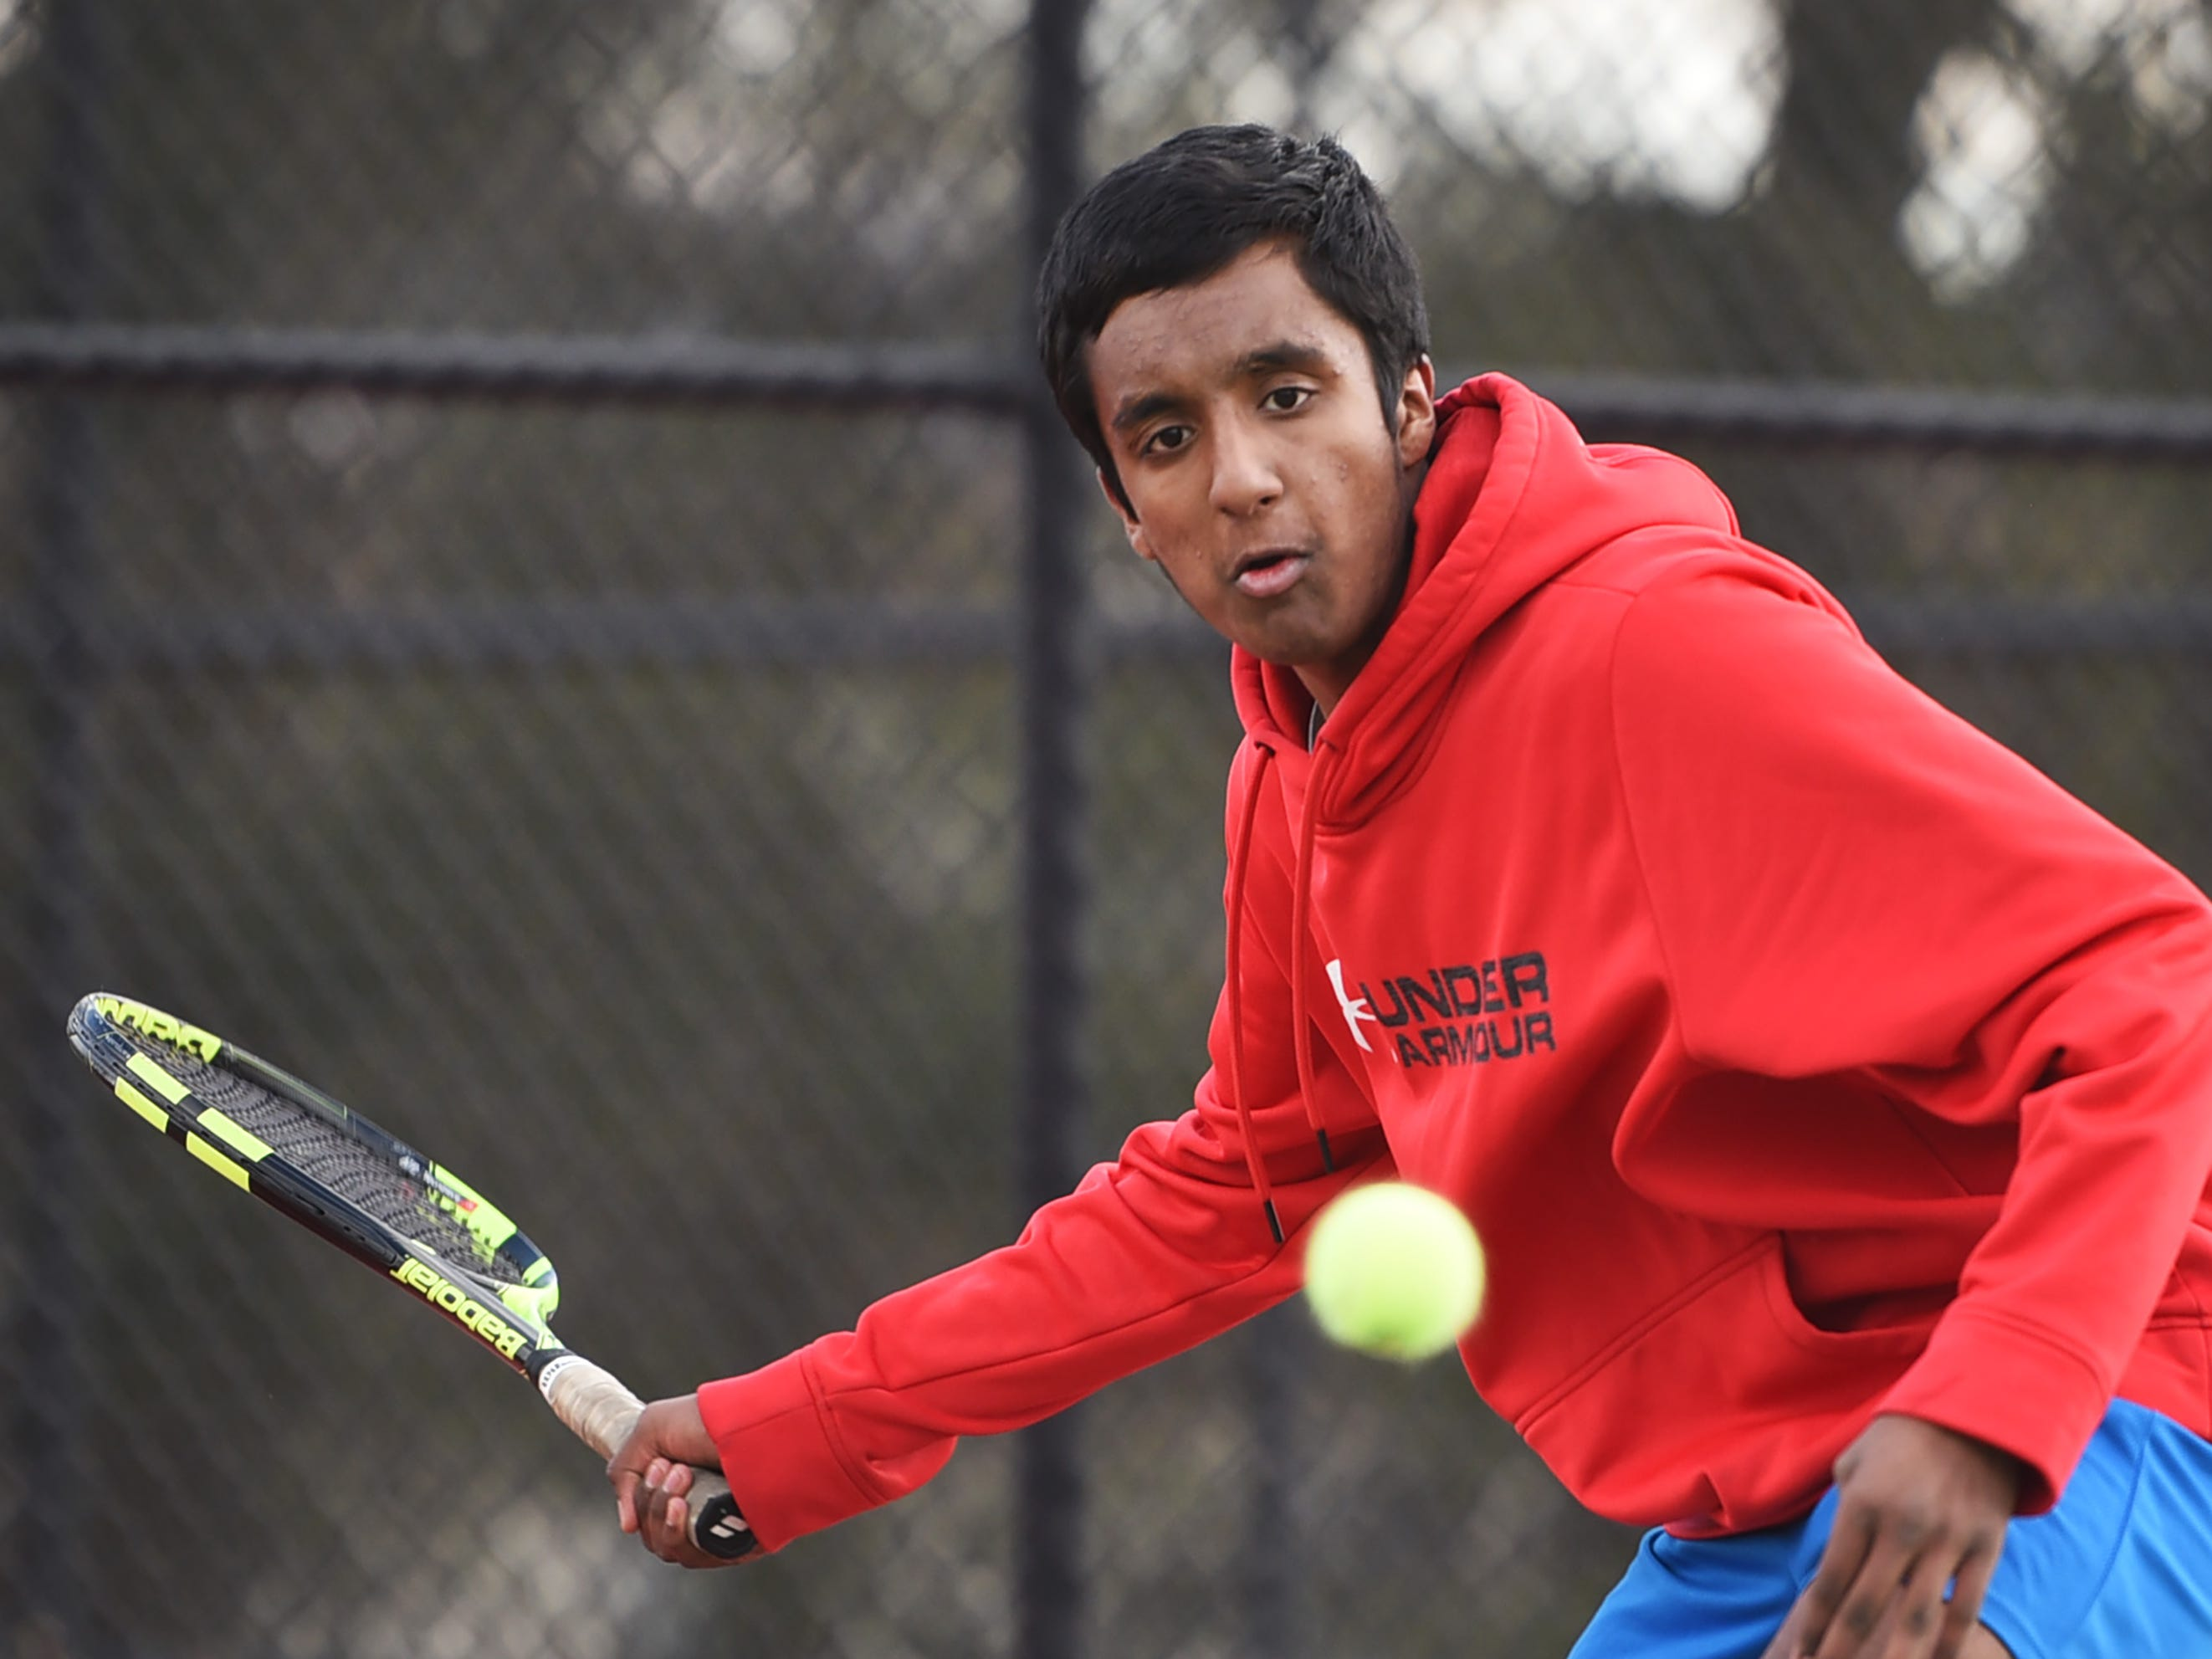 Morris Hills senior Vikranth Chinthareddy of Mount Olive plays during a practice, photographed at Morris Hills High School in Rockaway on 03/19/19. This is for the season preview on team diversity.